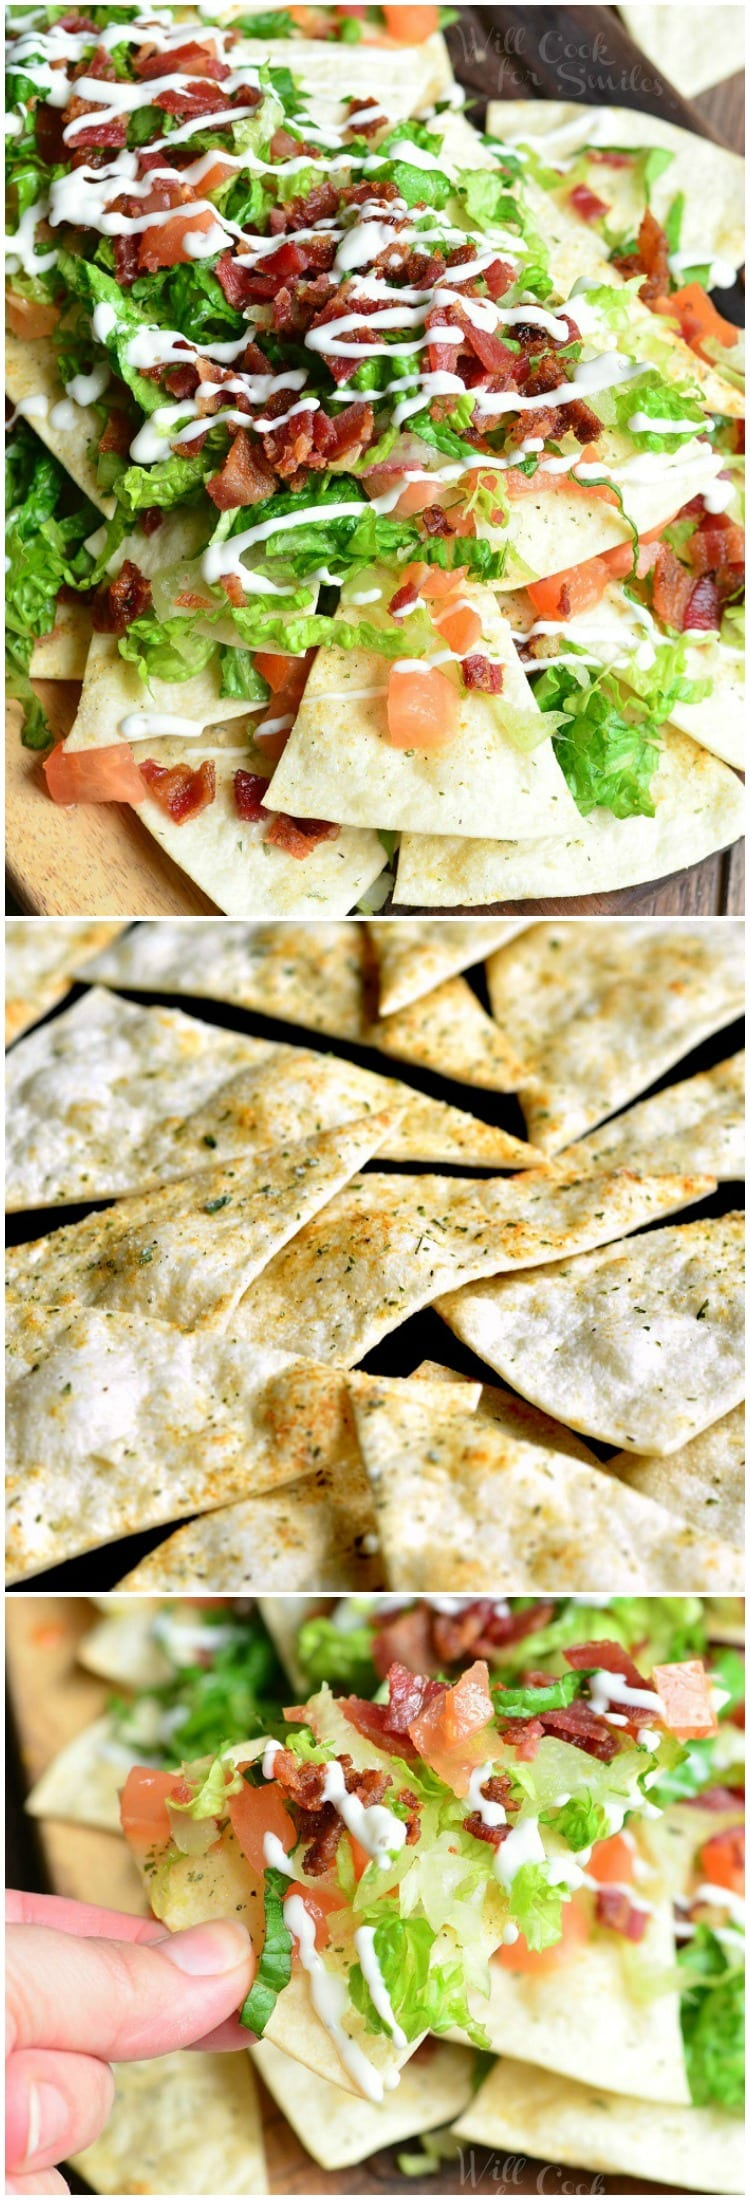 top photo BLT Nachos with lettuce, tomato, bacon, 2nd photo of chips, last photo holding a nacho